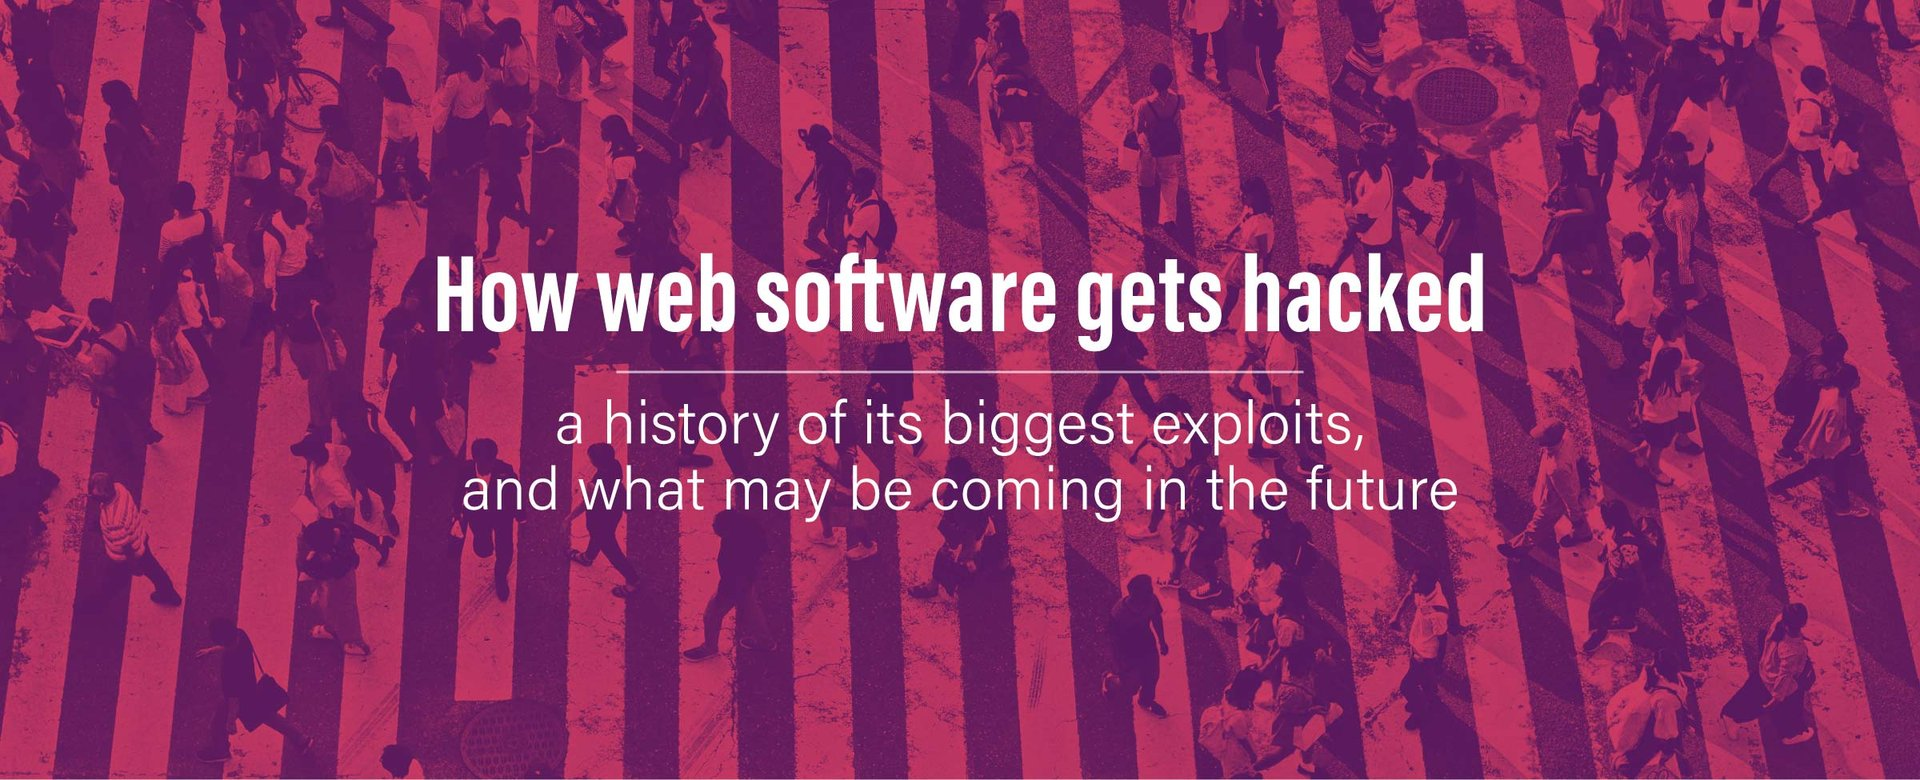 How web software gets hacked — a history of its biggest